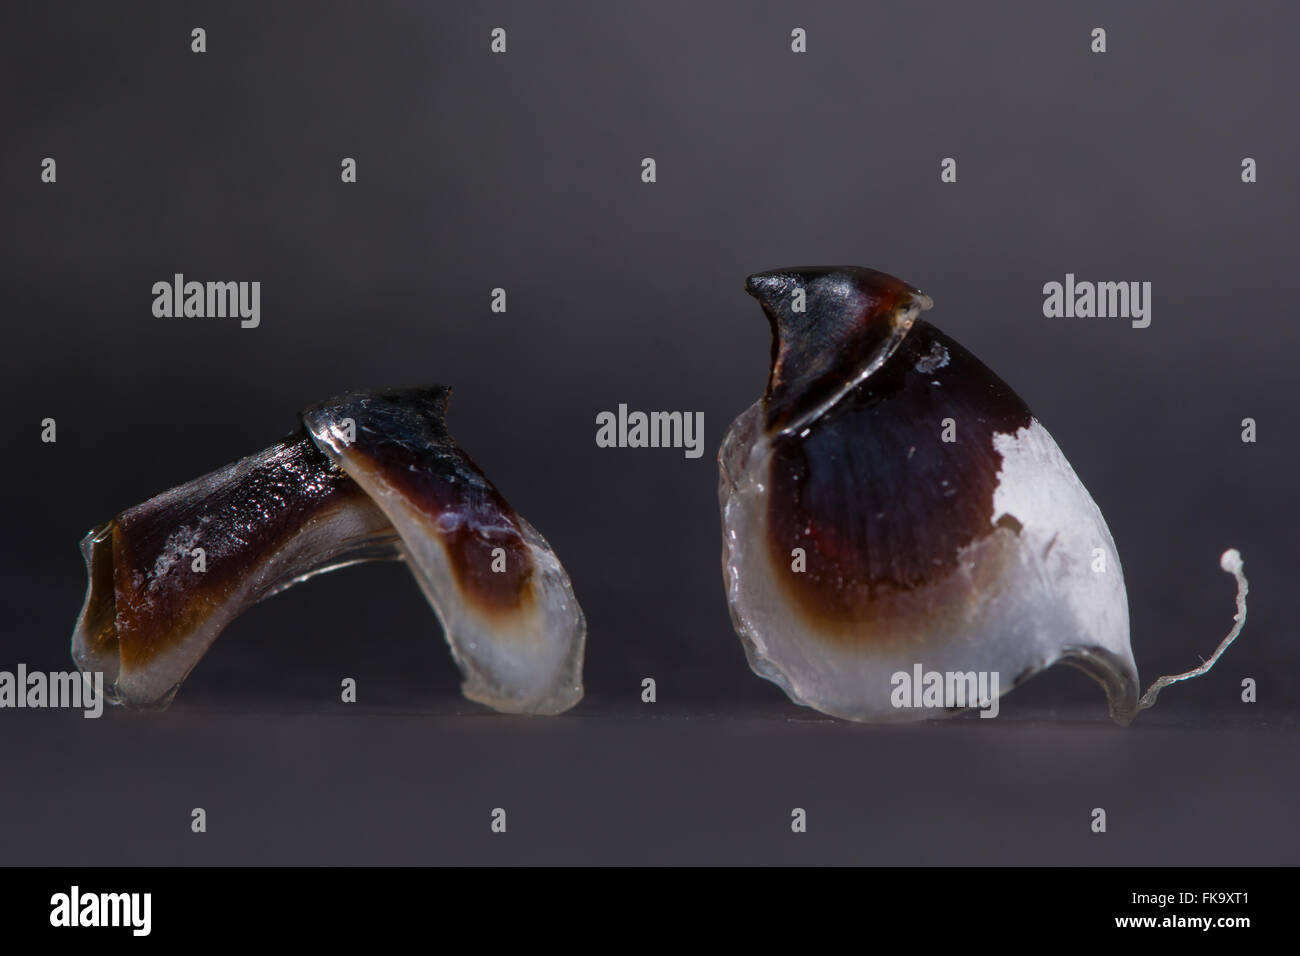 Octopus beak. Two parts of an octopus' mouthparts, made of keratin and used to crush prey - Stock Image